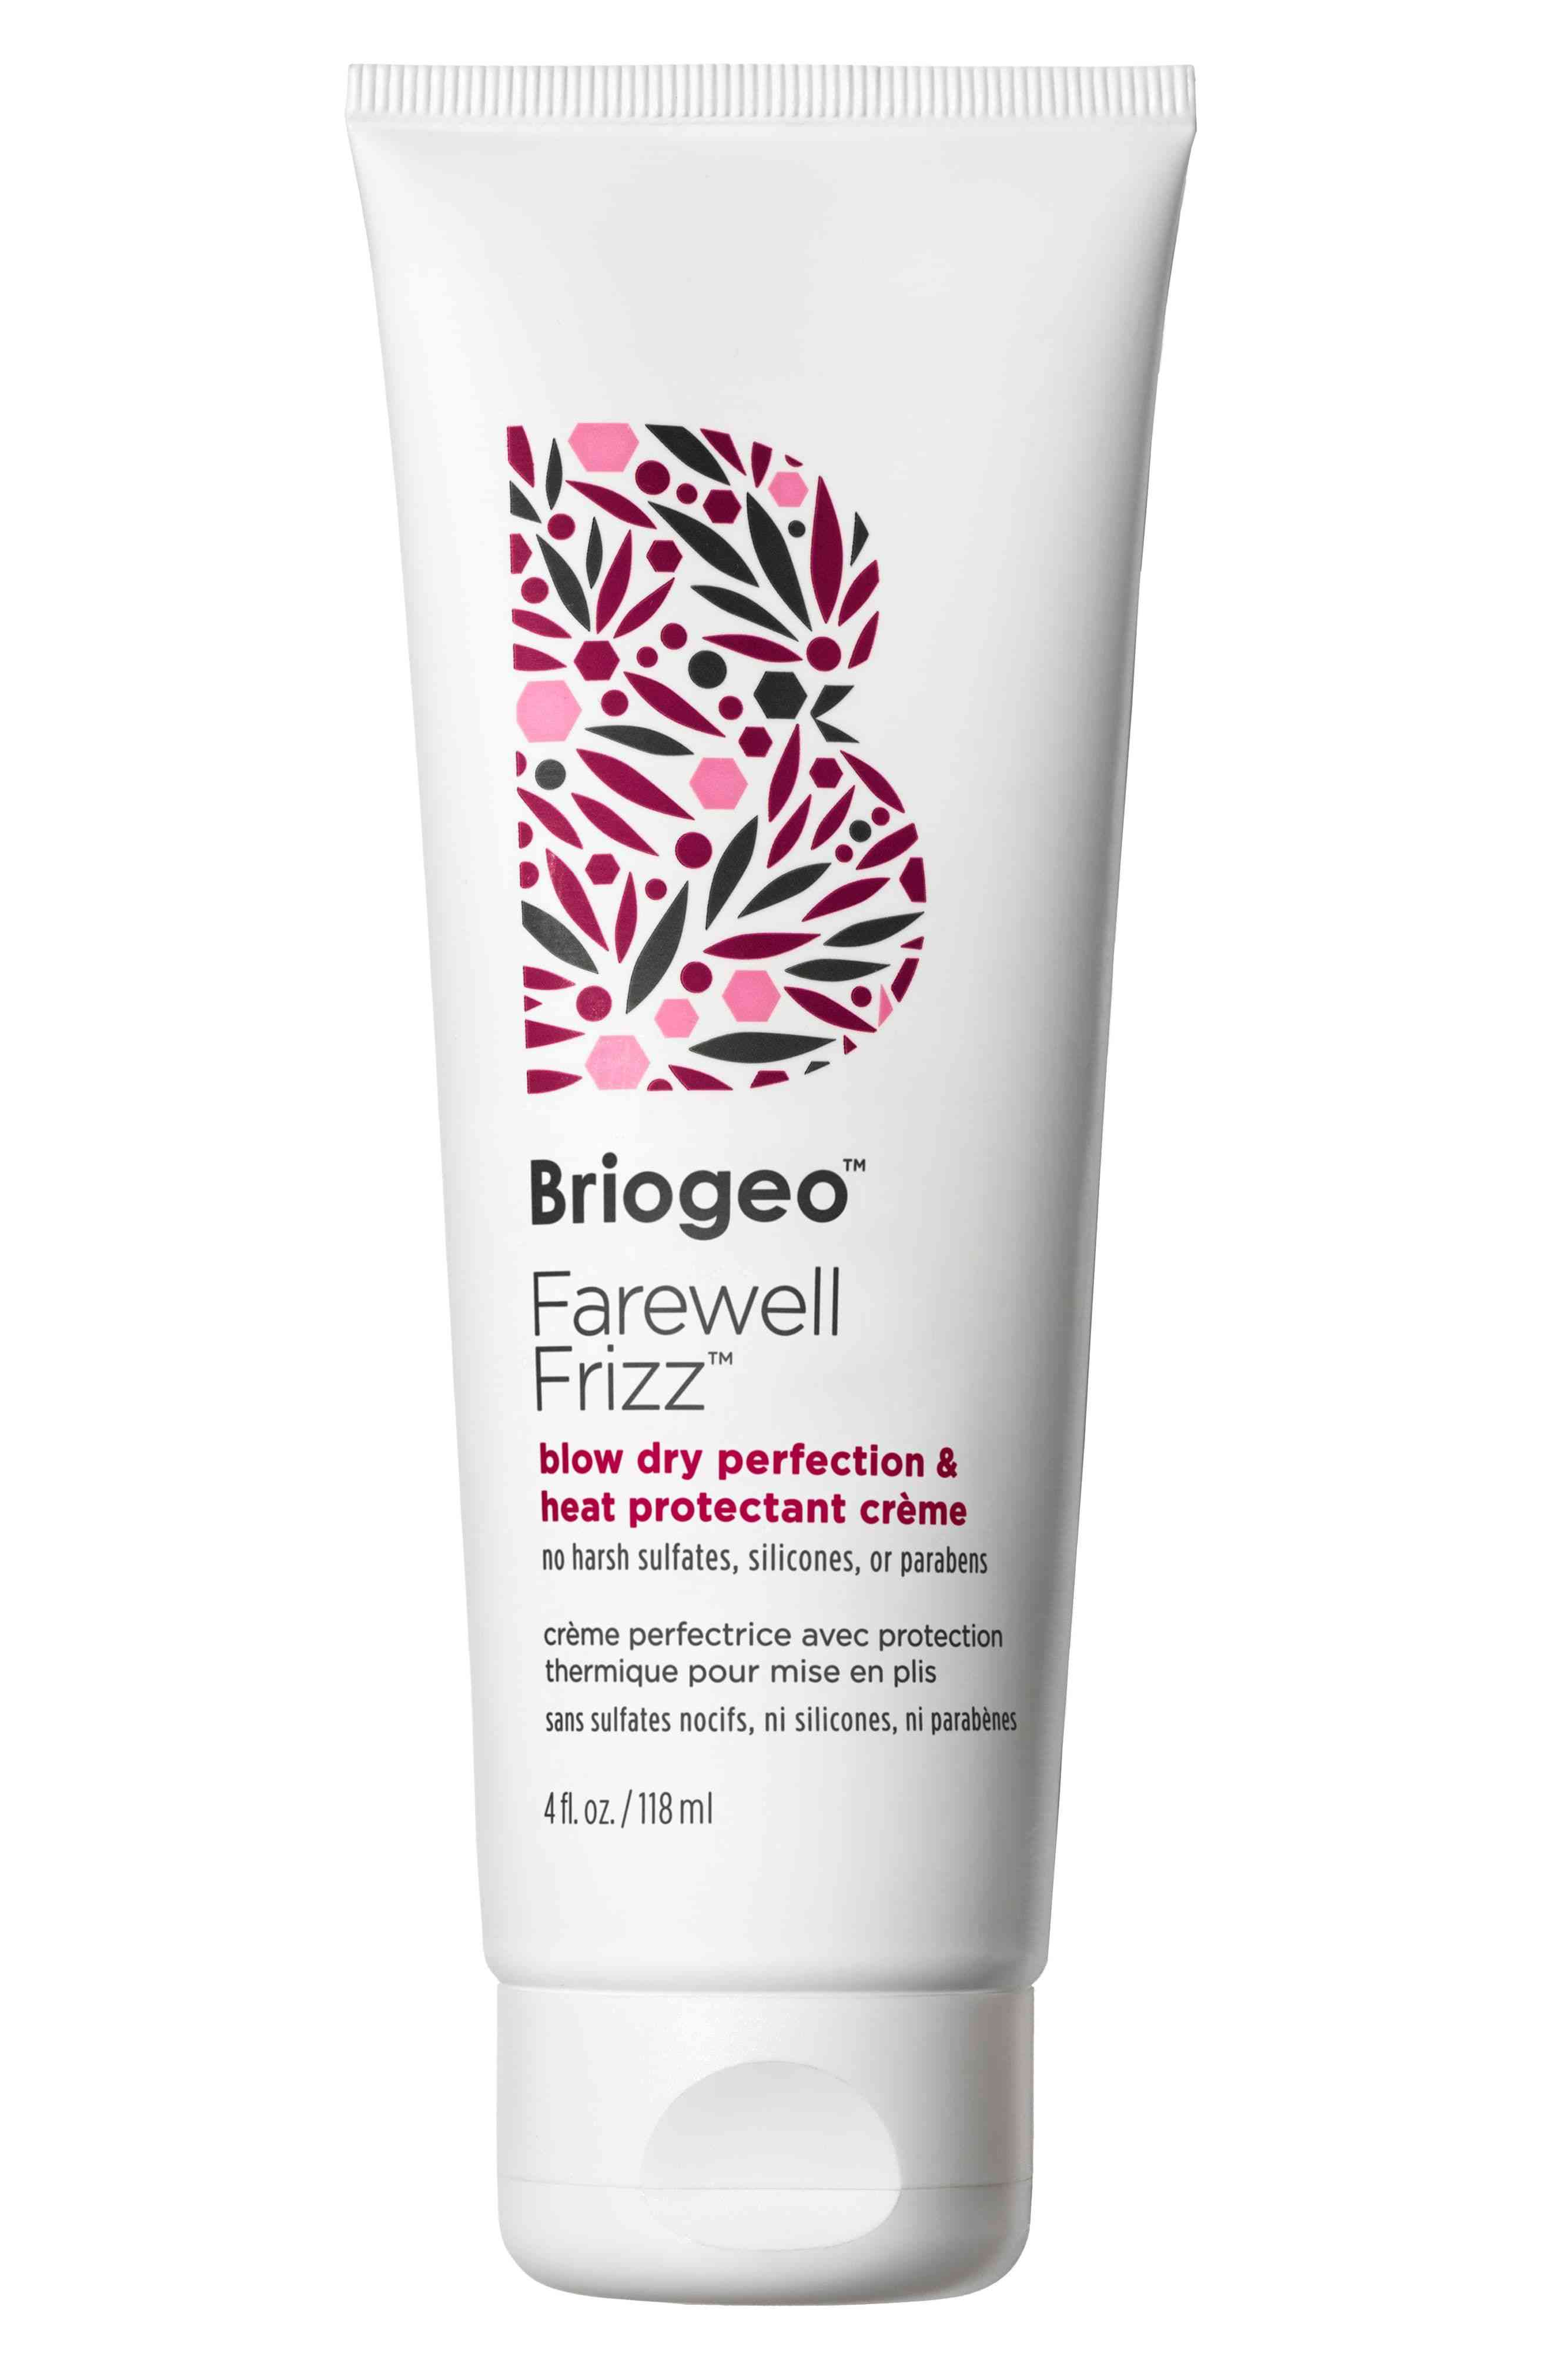 Farewell Frizz blow dry perfection & heat protectant crème